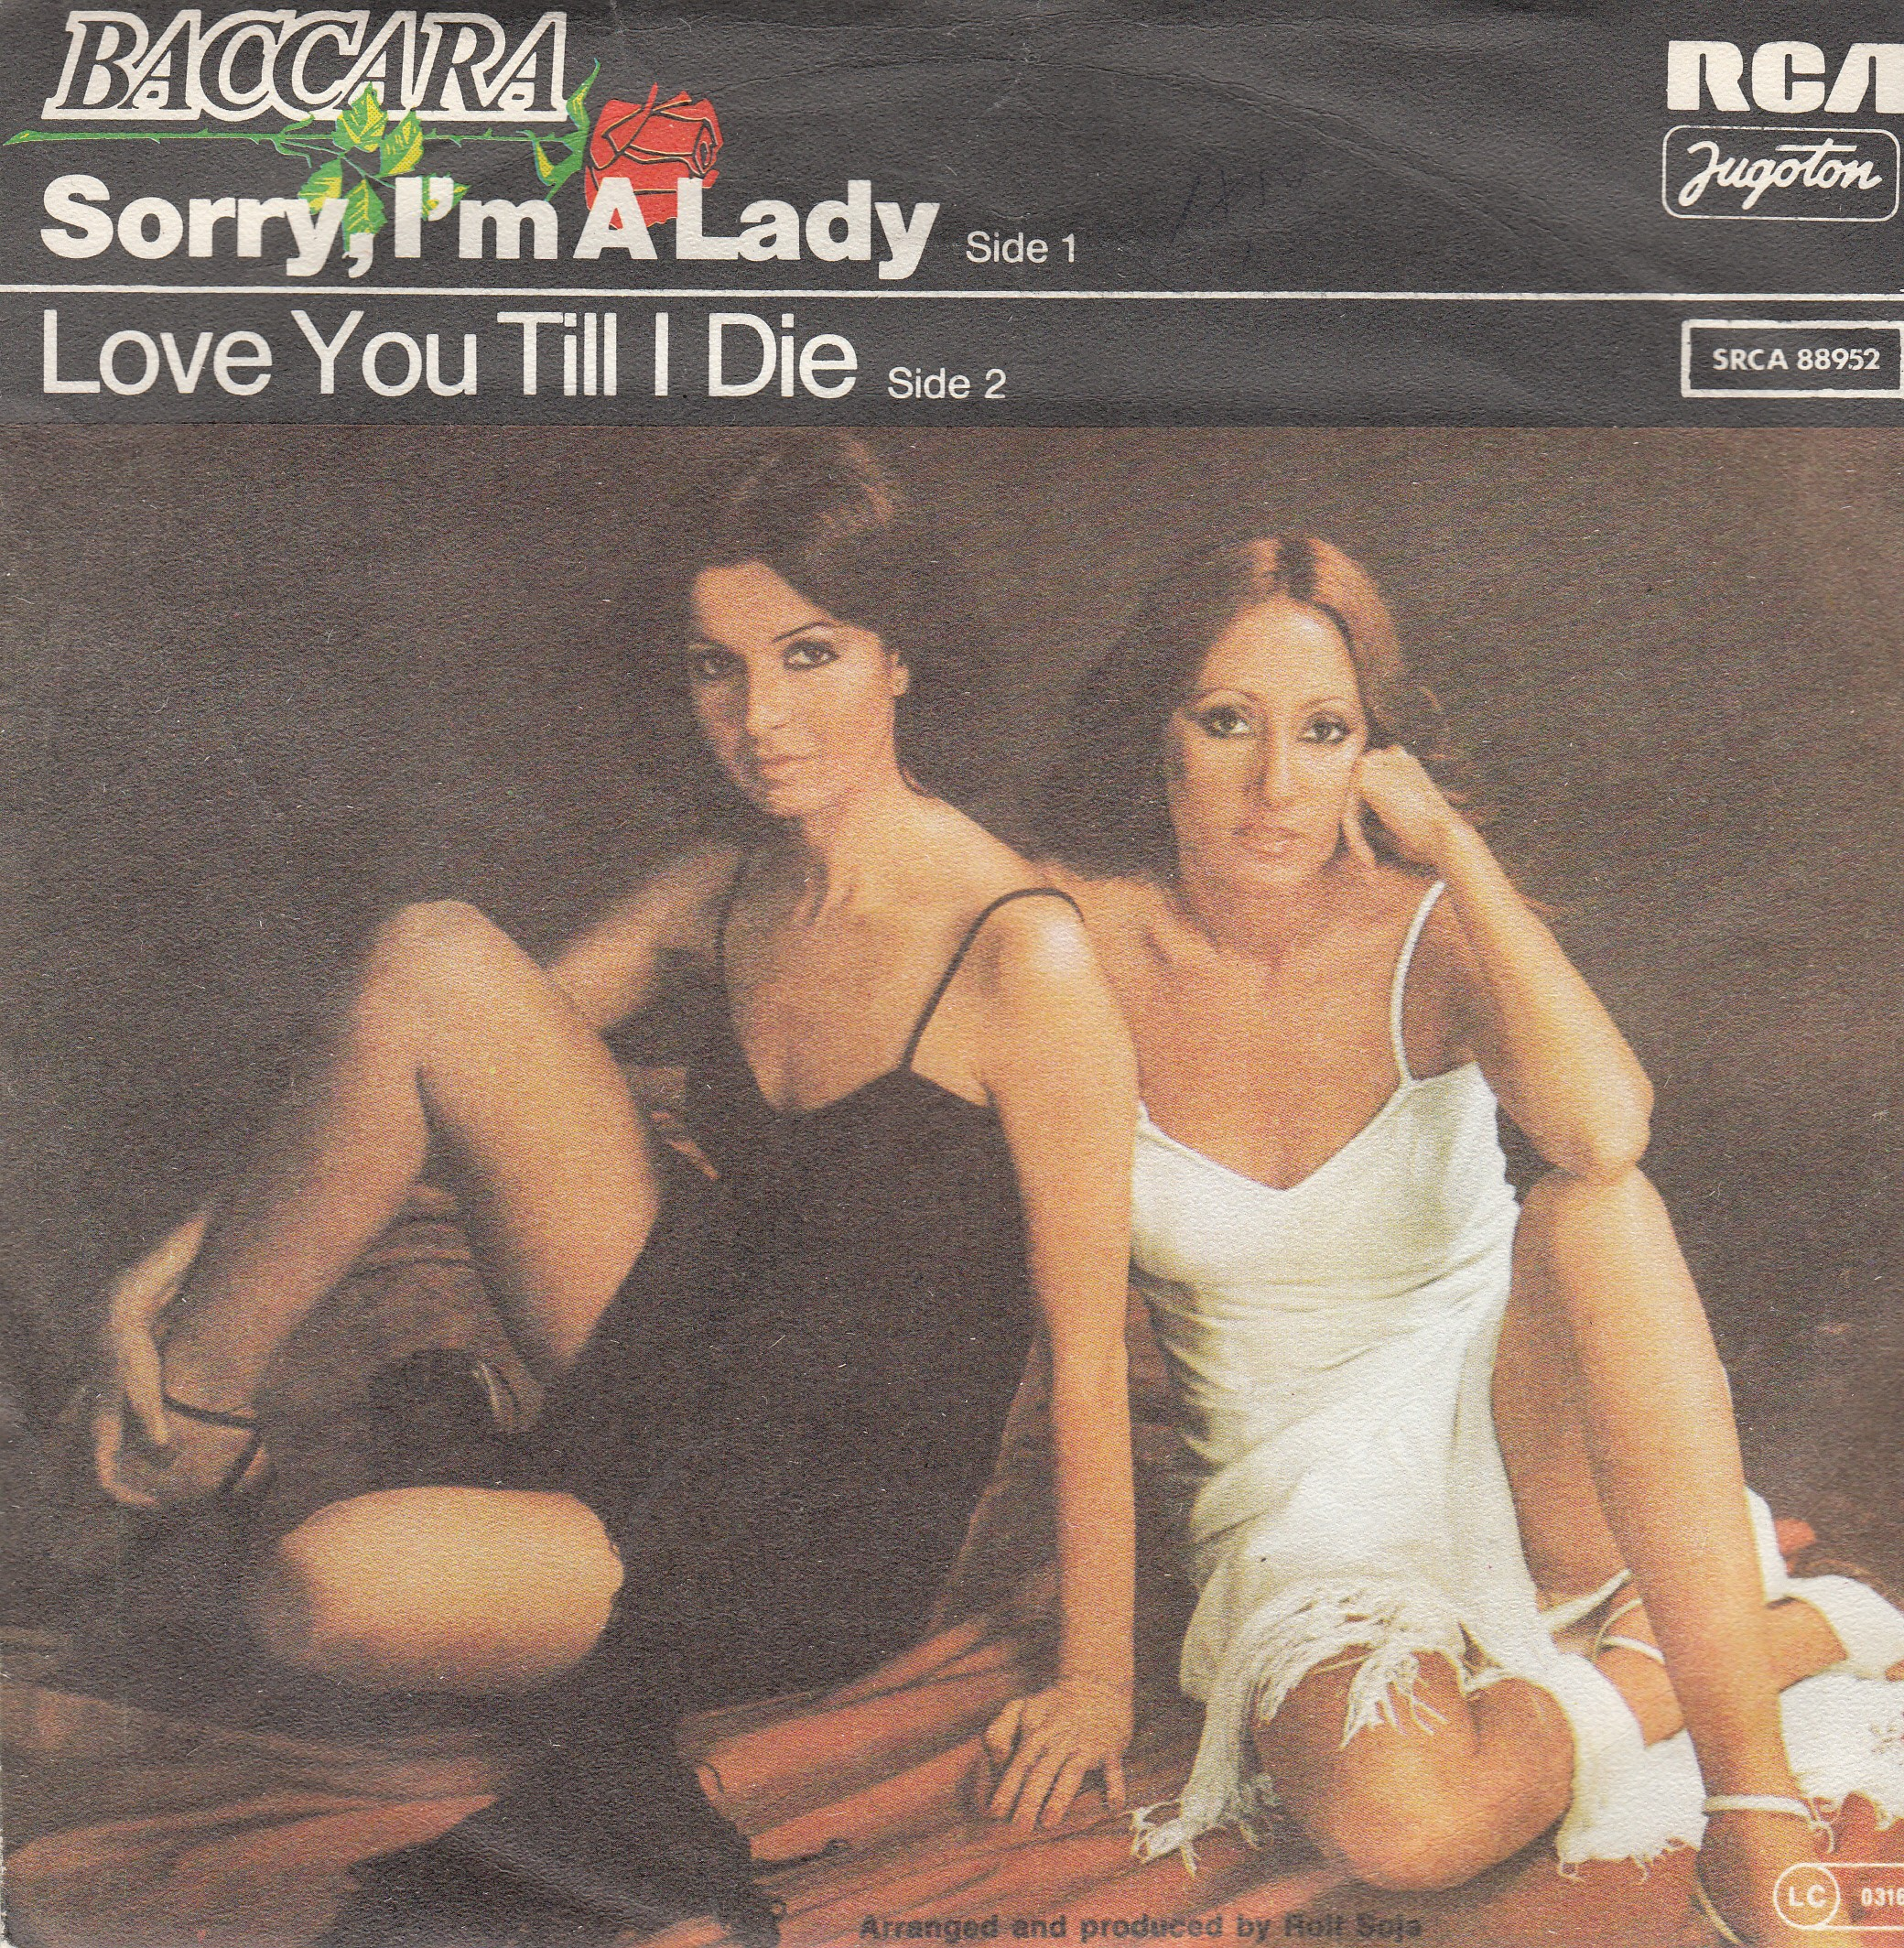 Baccara - Sorry Im A Lady/love You Till I Die